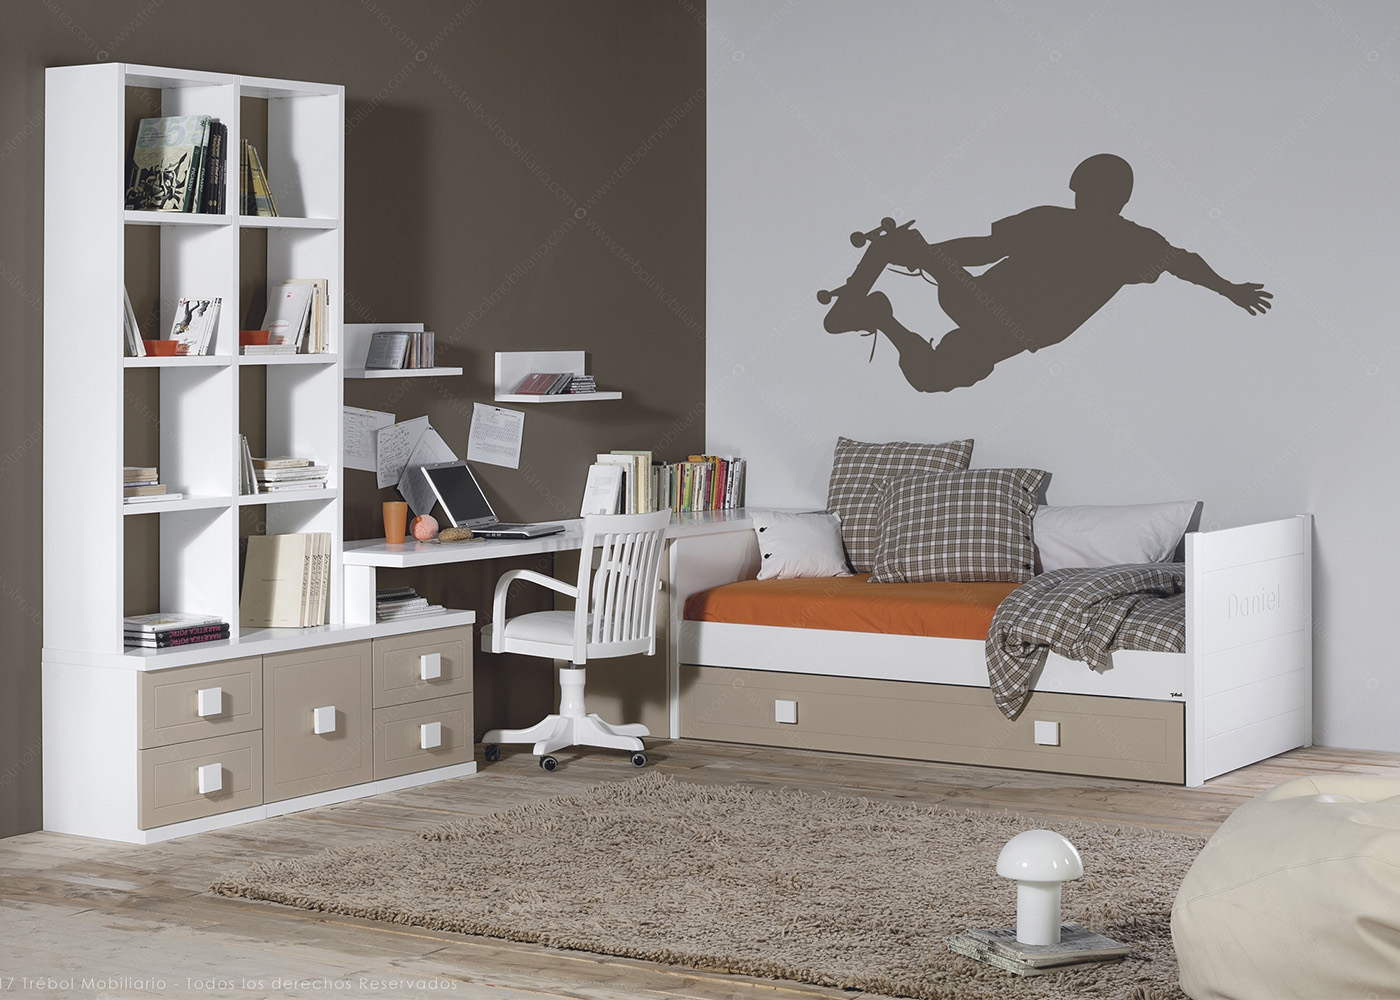 chambre quip e pour tudiant de haute qualit chez ksl living. Black Bedroom Furniture Sets. Home Design Ideas